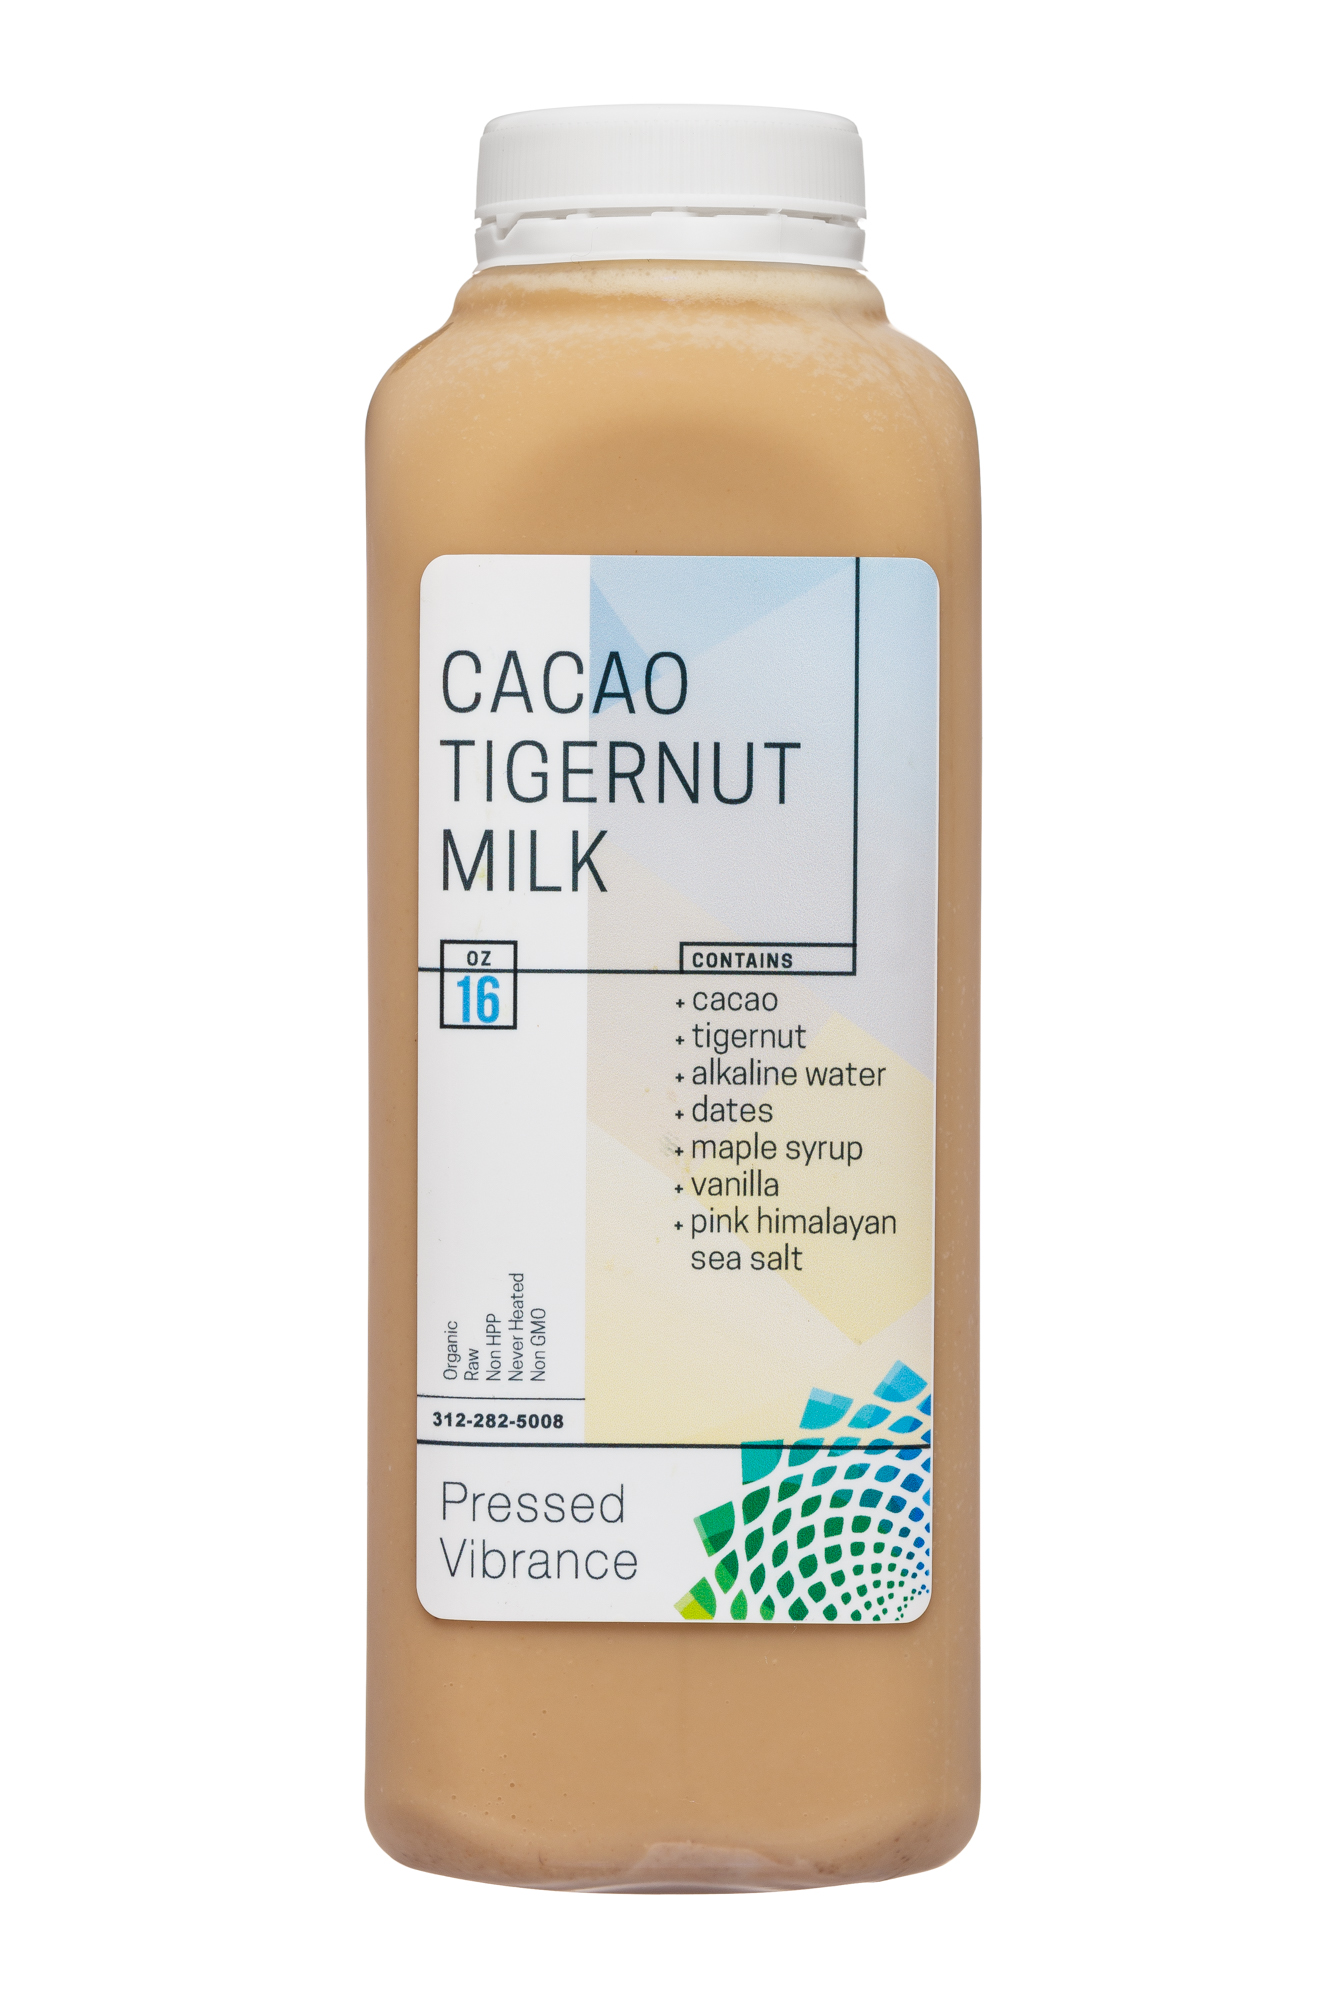 Cacao Tigernut Milk